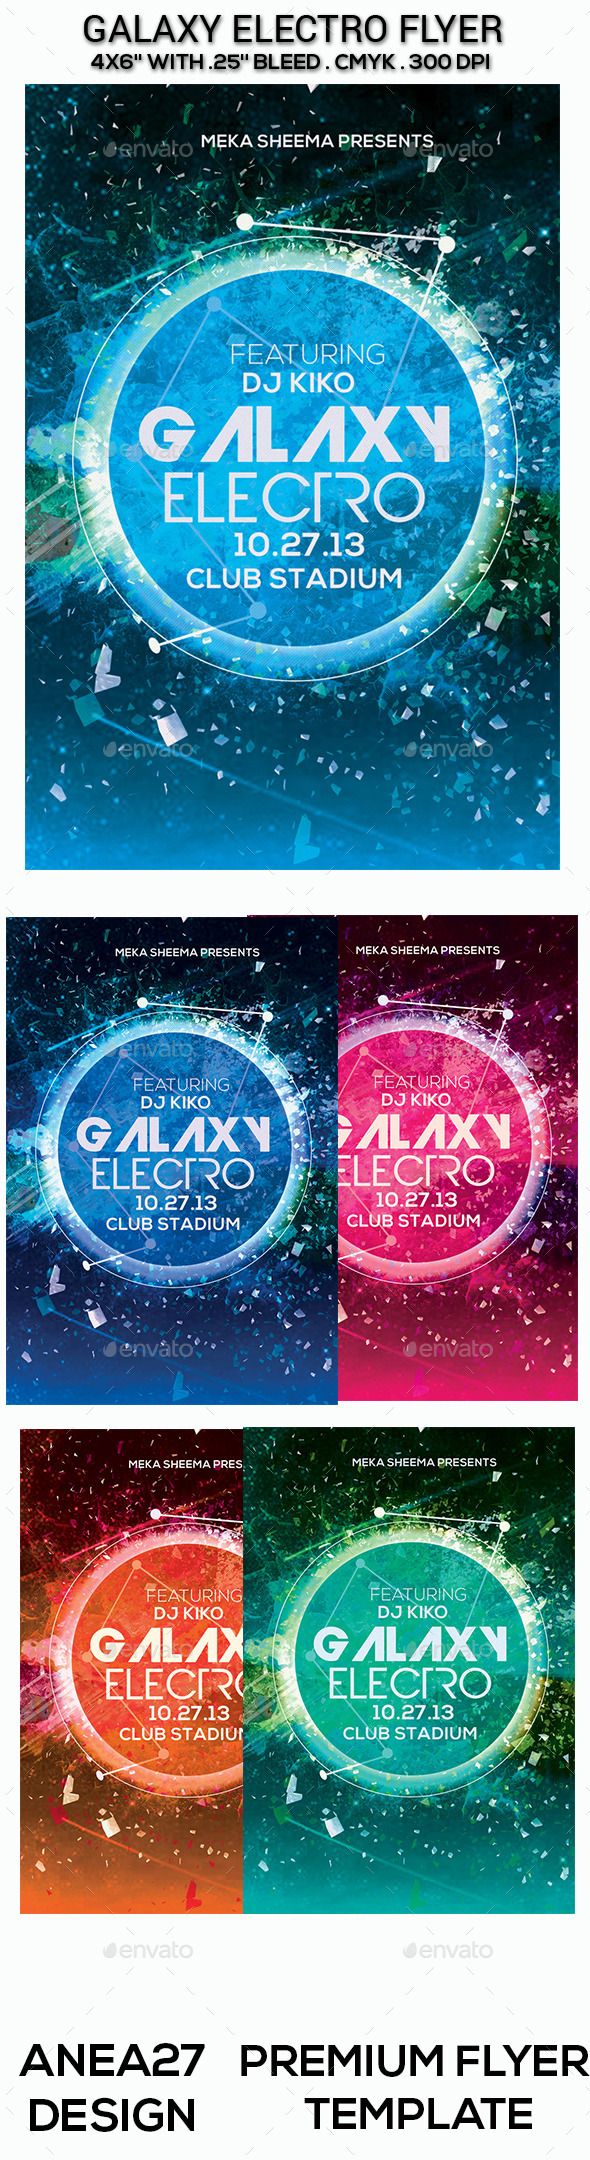 GraphicRiver Galaxy Electro Flyer 9660906